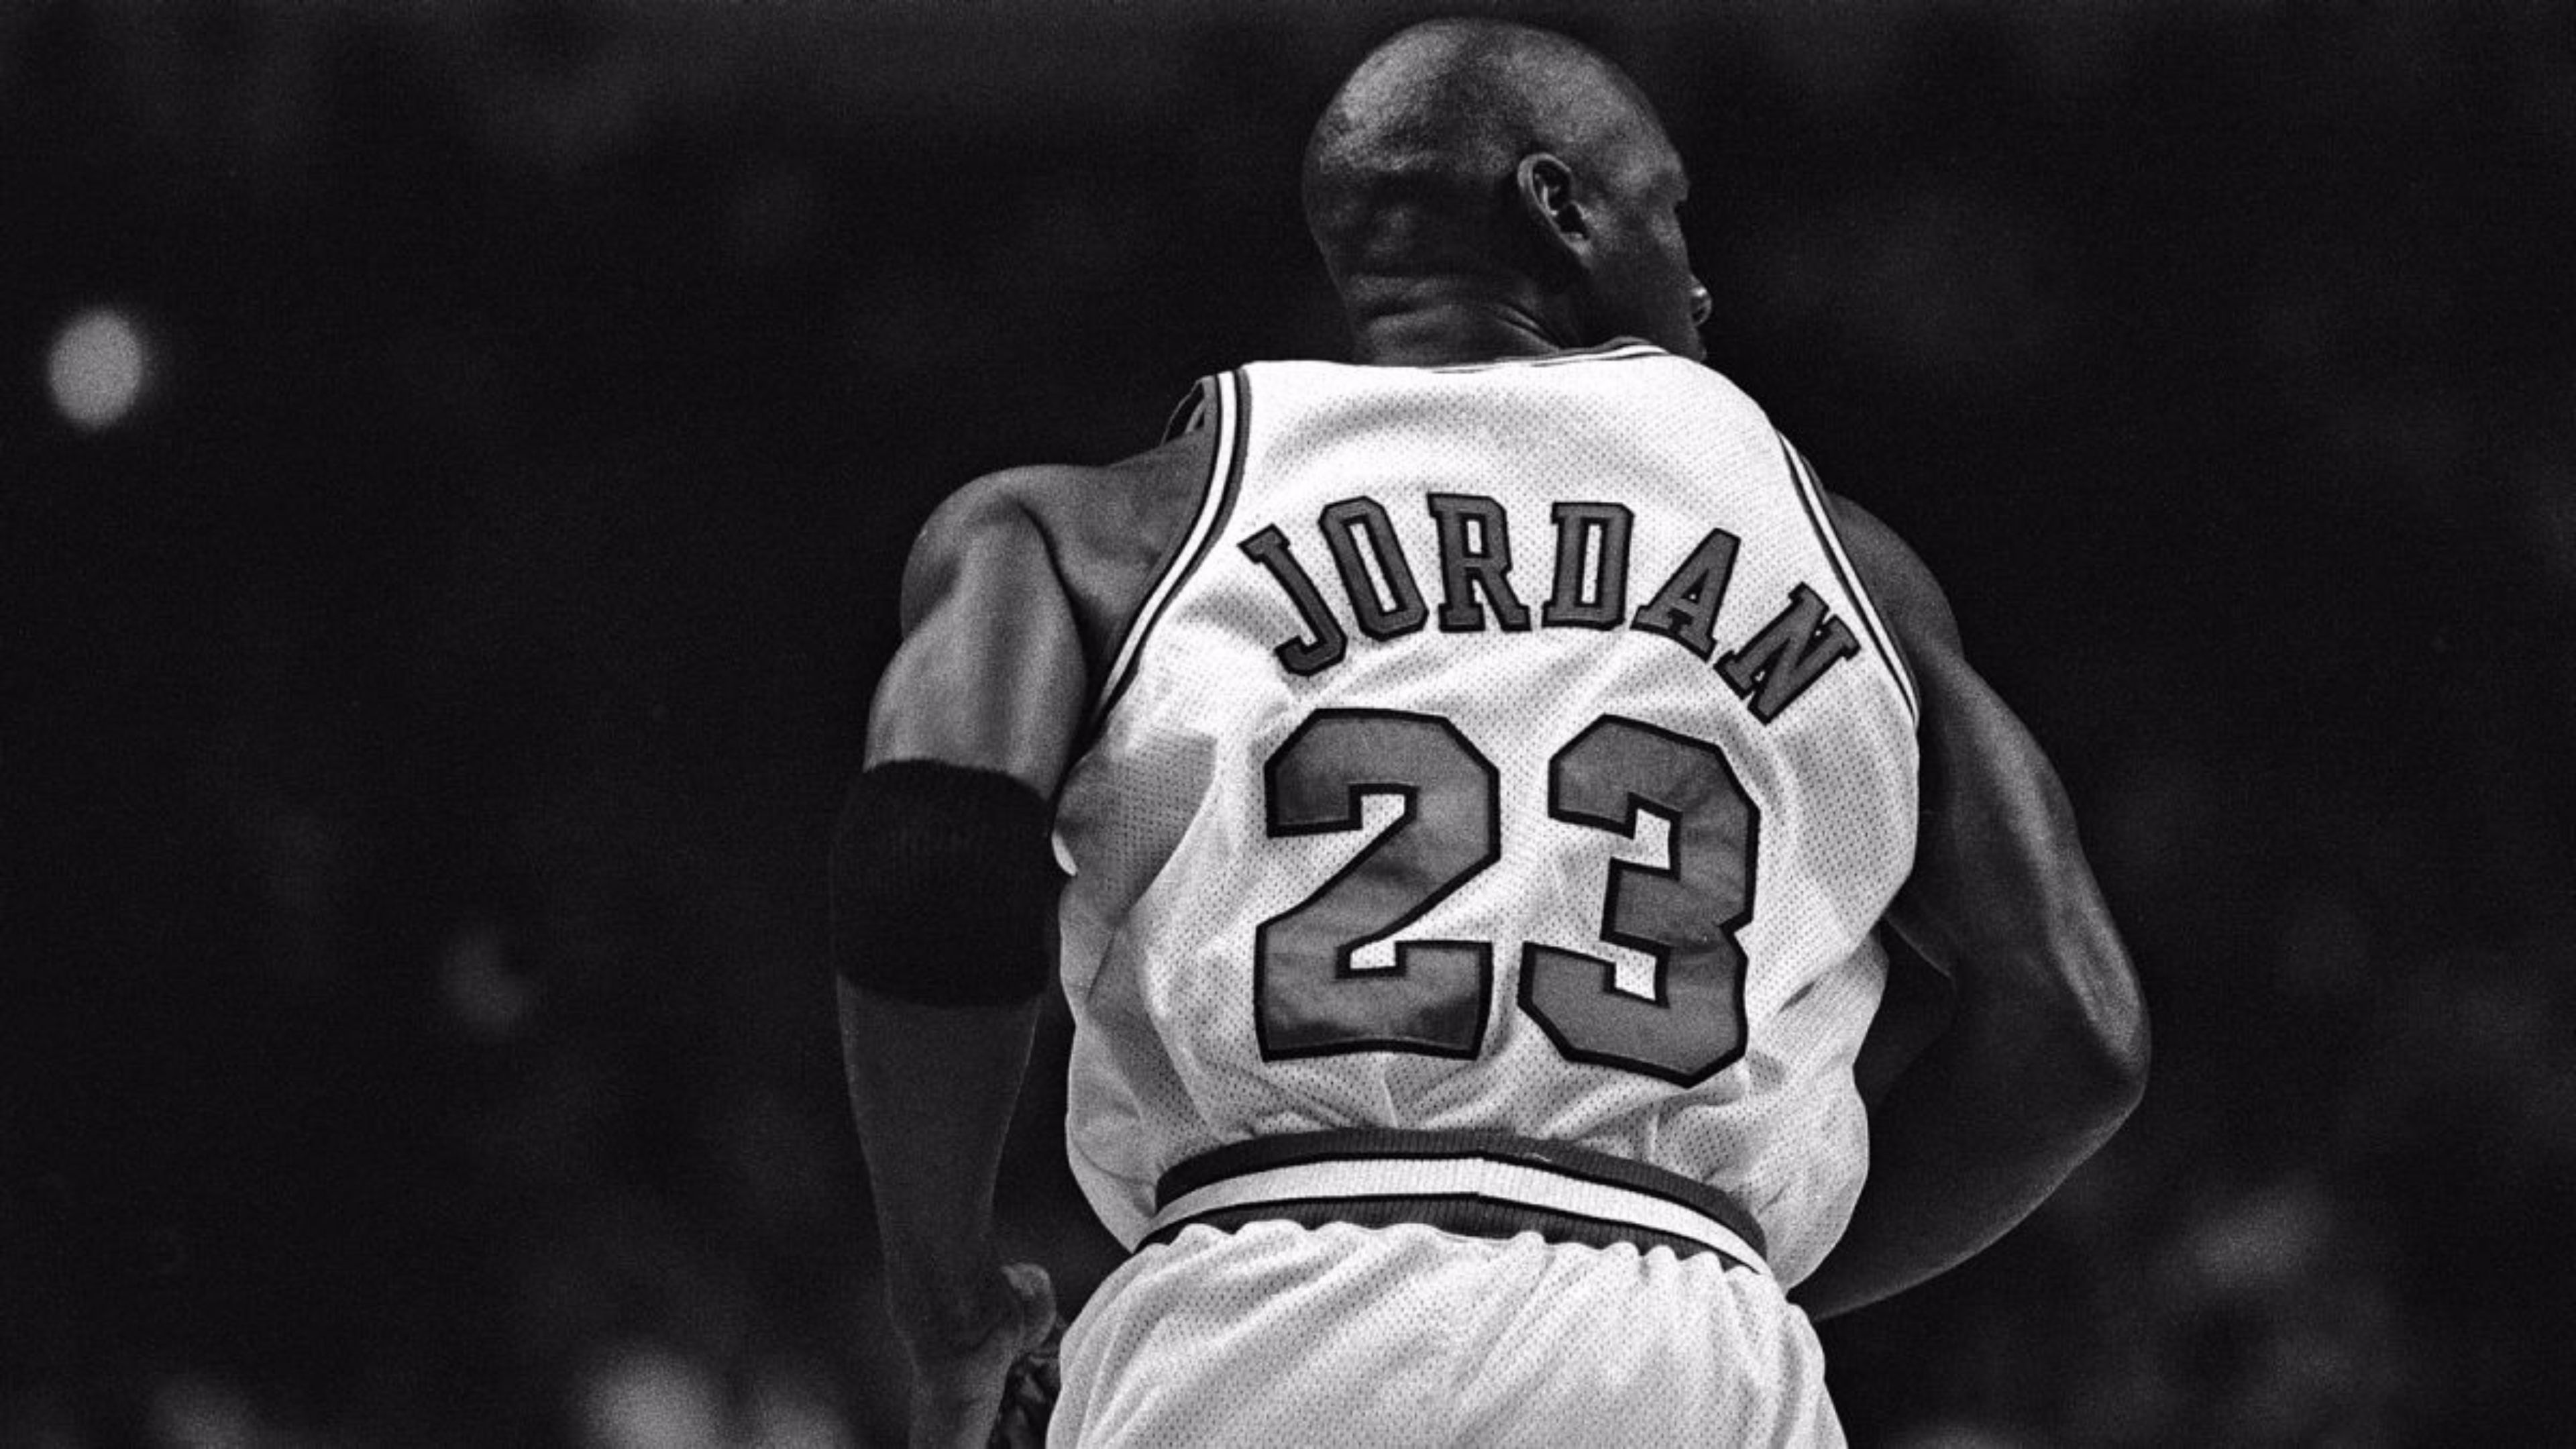 Michael Jordan 50th Wallpaper: HD Air Jordan Logo Wallpapers For Free Download